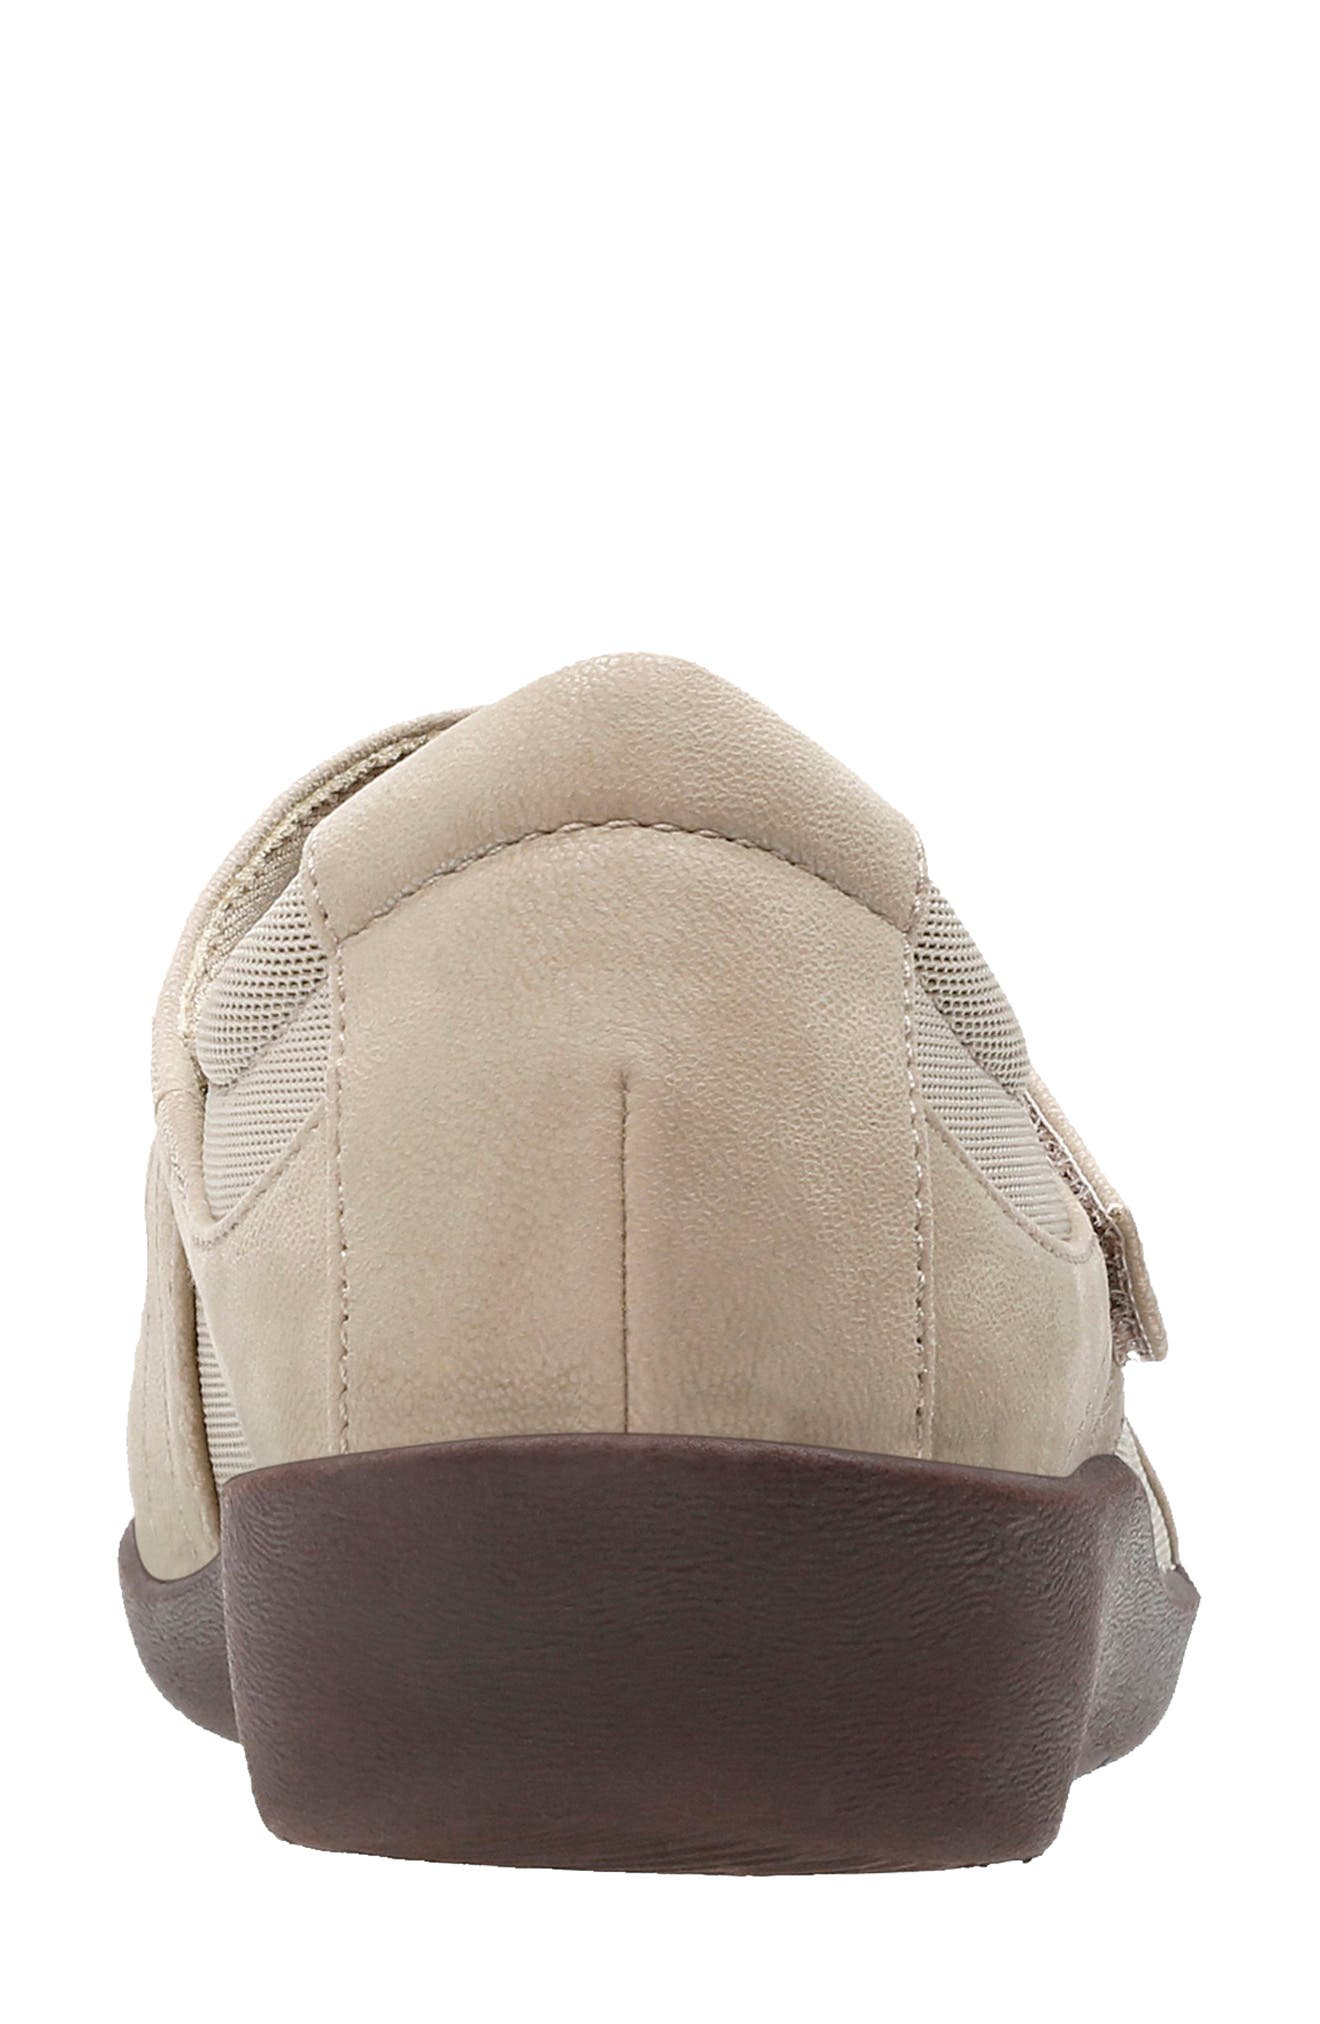 CLARKS<SUP>®</SUP>,                             Sillian Bella Mary Jane Flat,                             Alternate thumbnail 6, color,                             SAND SYNTHETIC NUBUCK